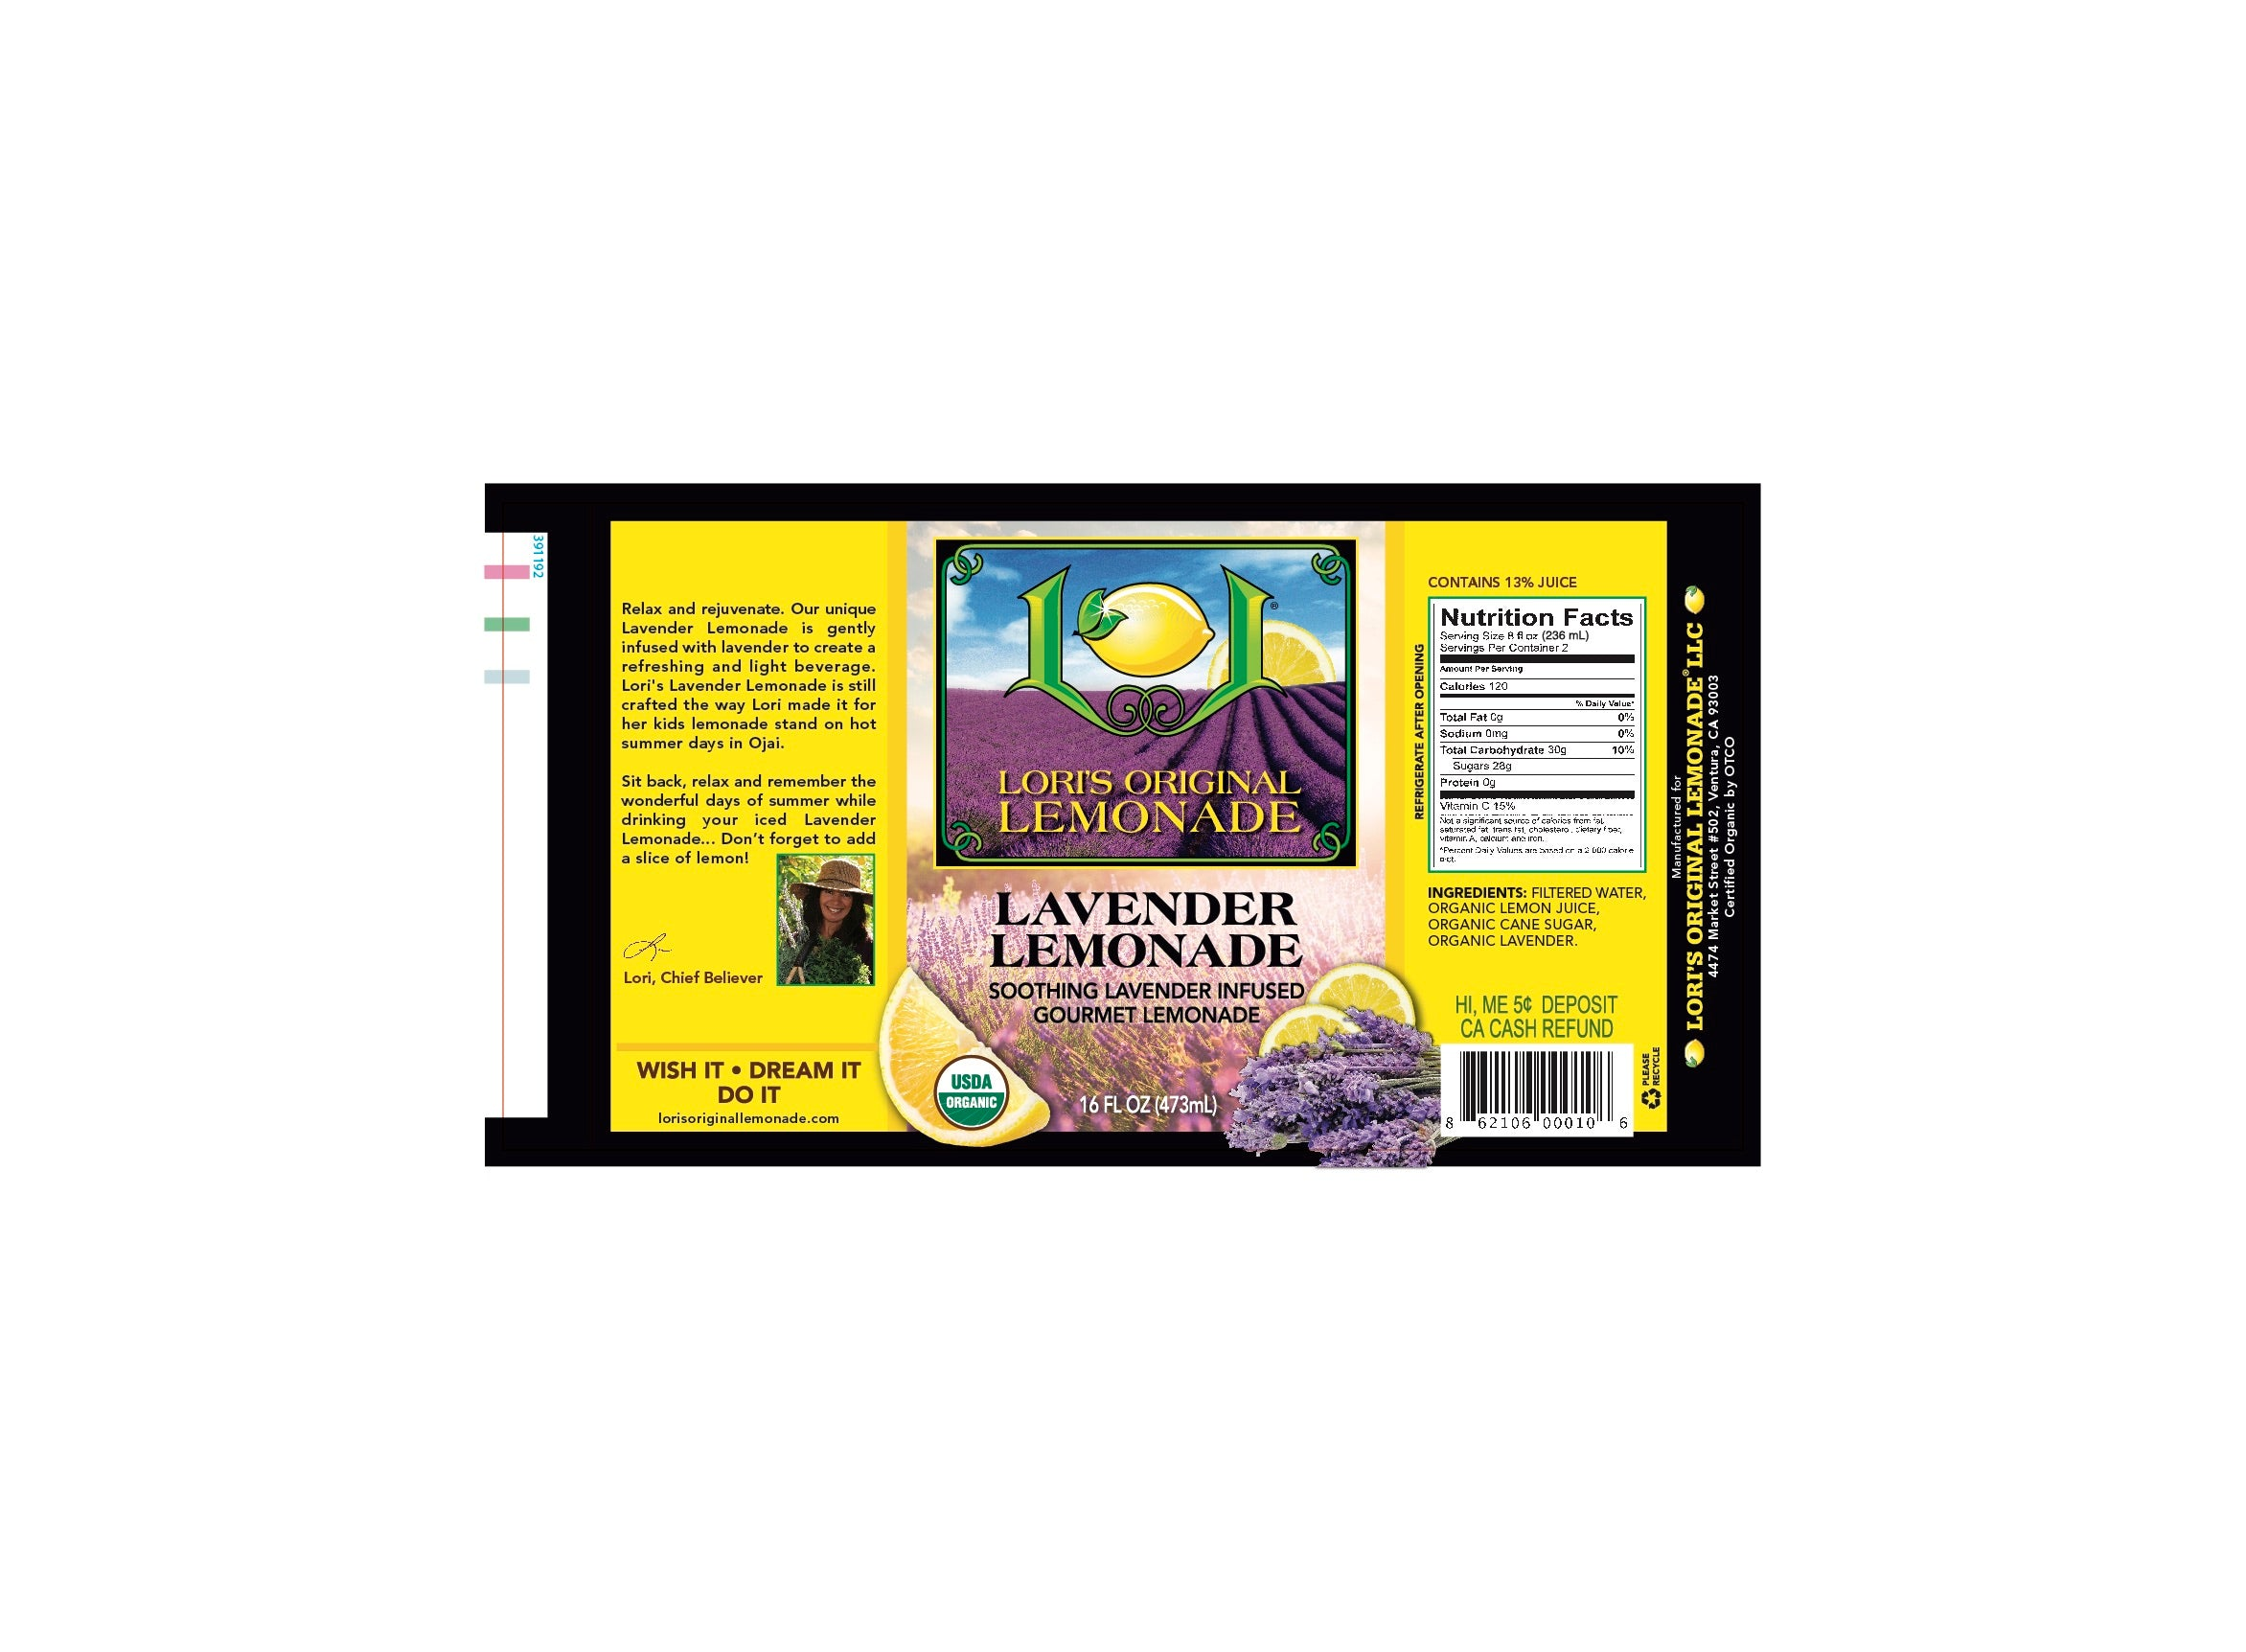 Organic Lavender Lemonade - Lori's Original Lemonade